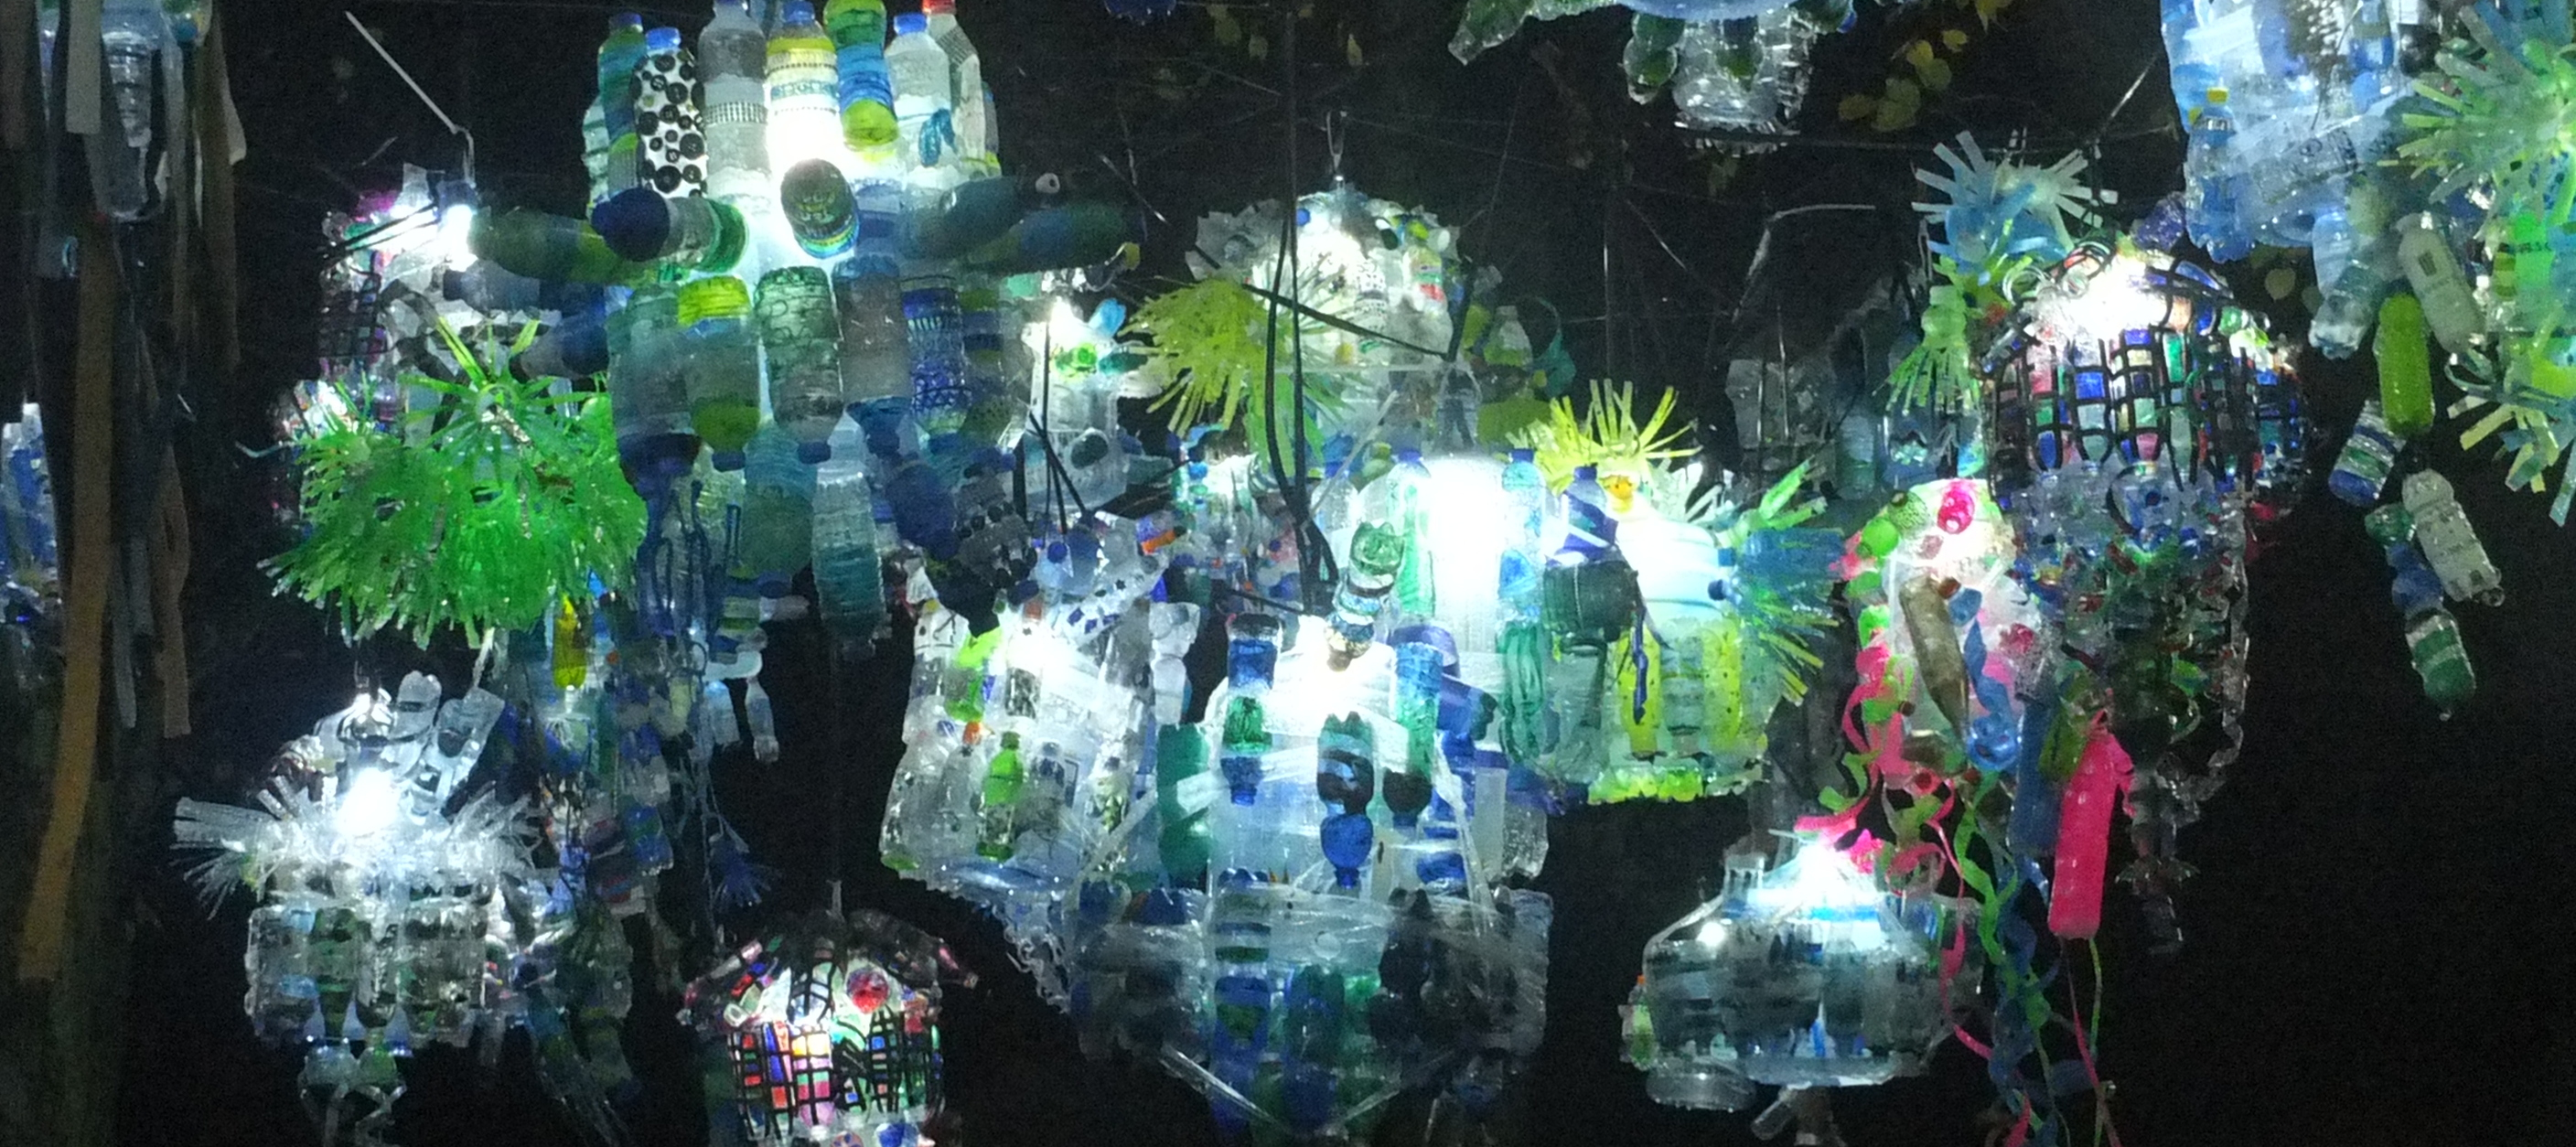 Installation out of plastic bottles at Glow Eindhoven 2015.